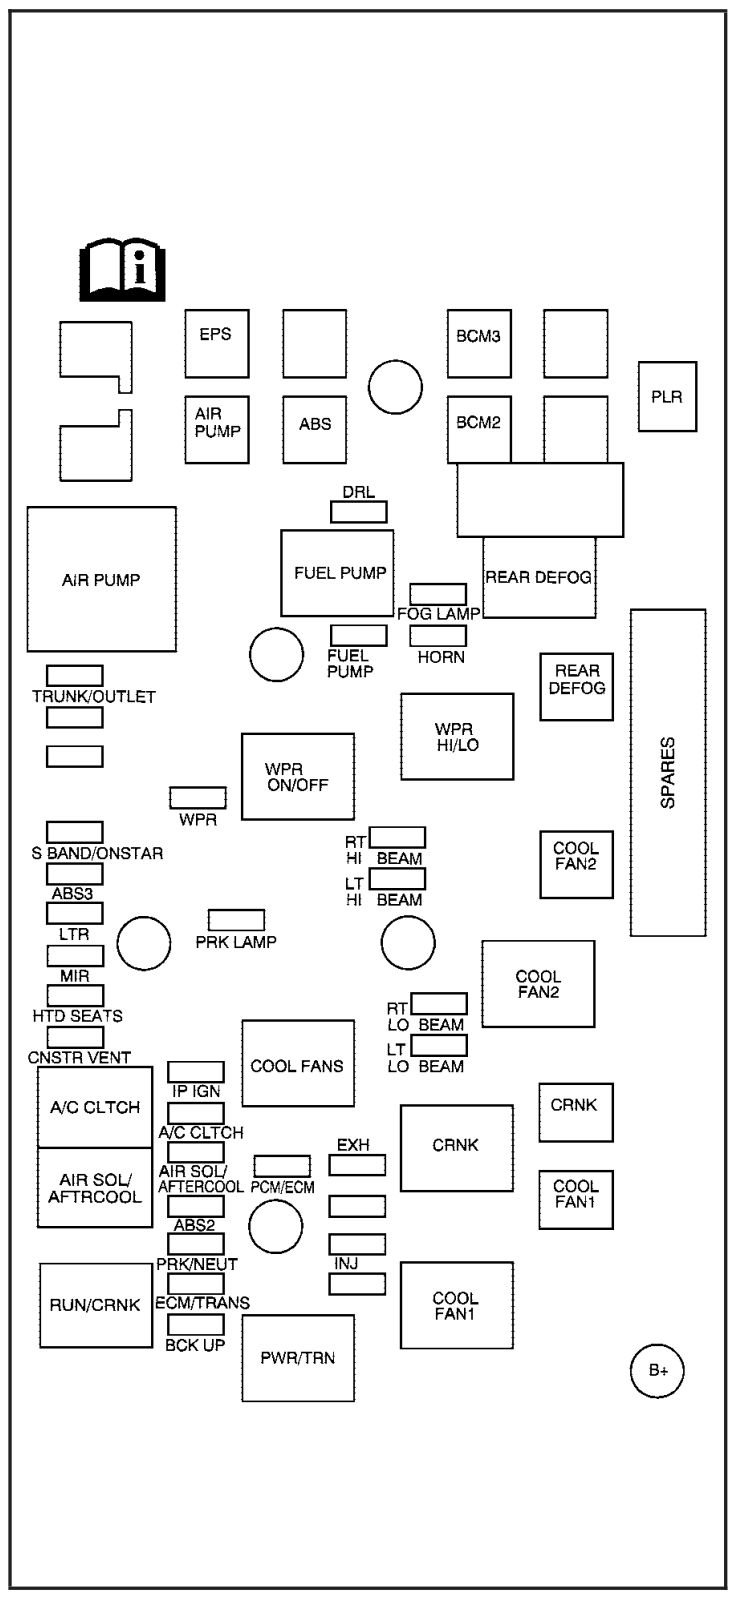 Circuit Electric For Guide: 2007 pontiac g5 fuse box diagram